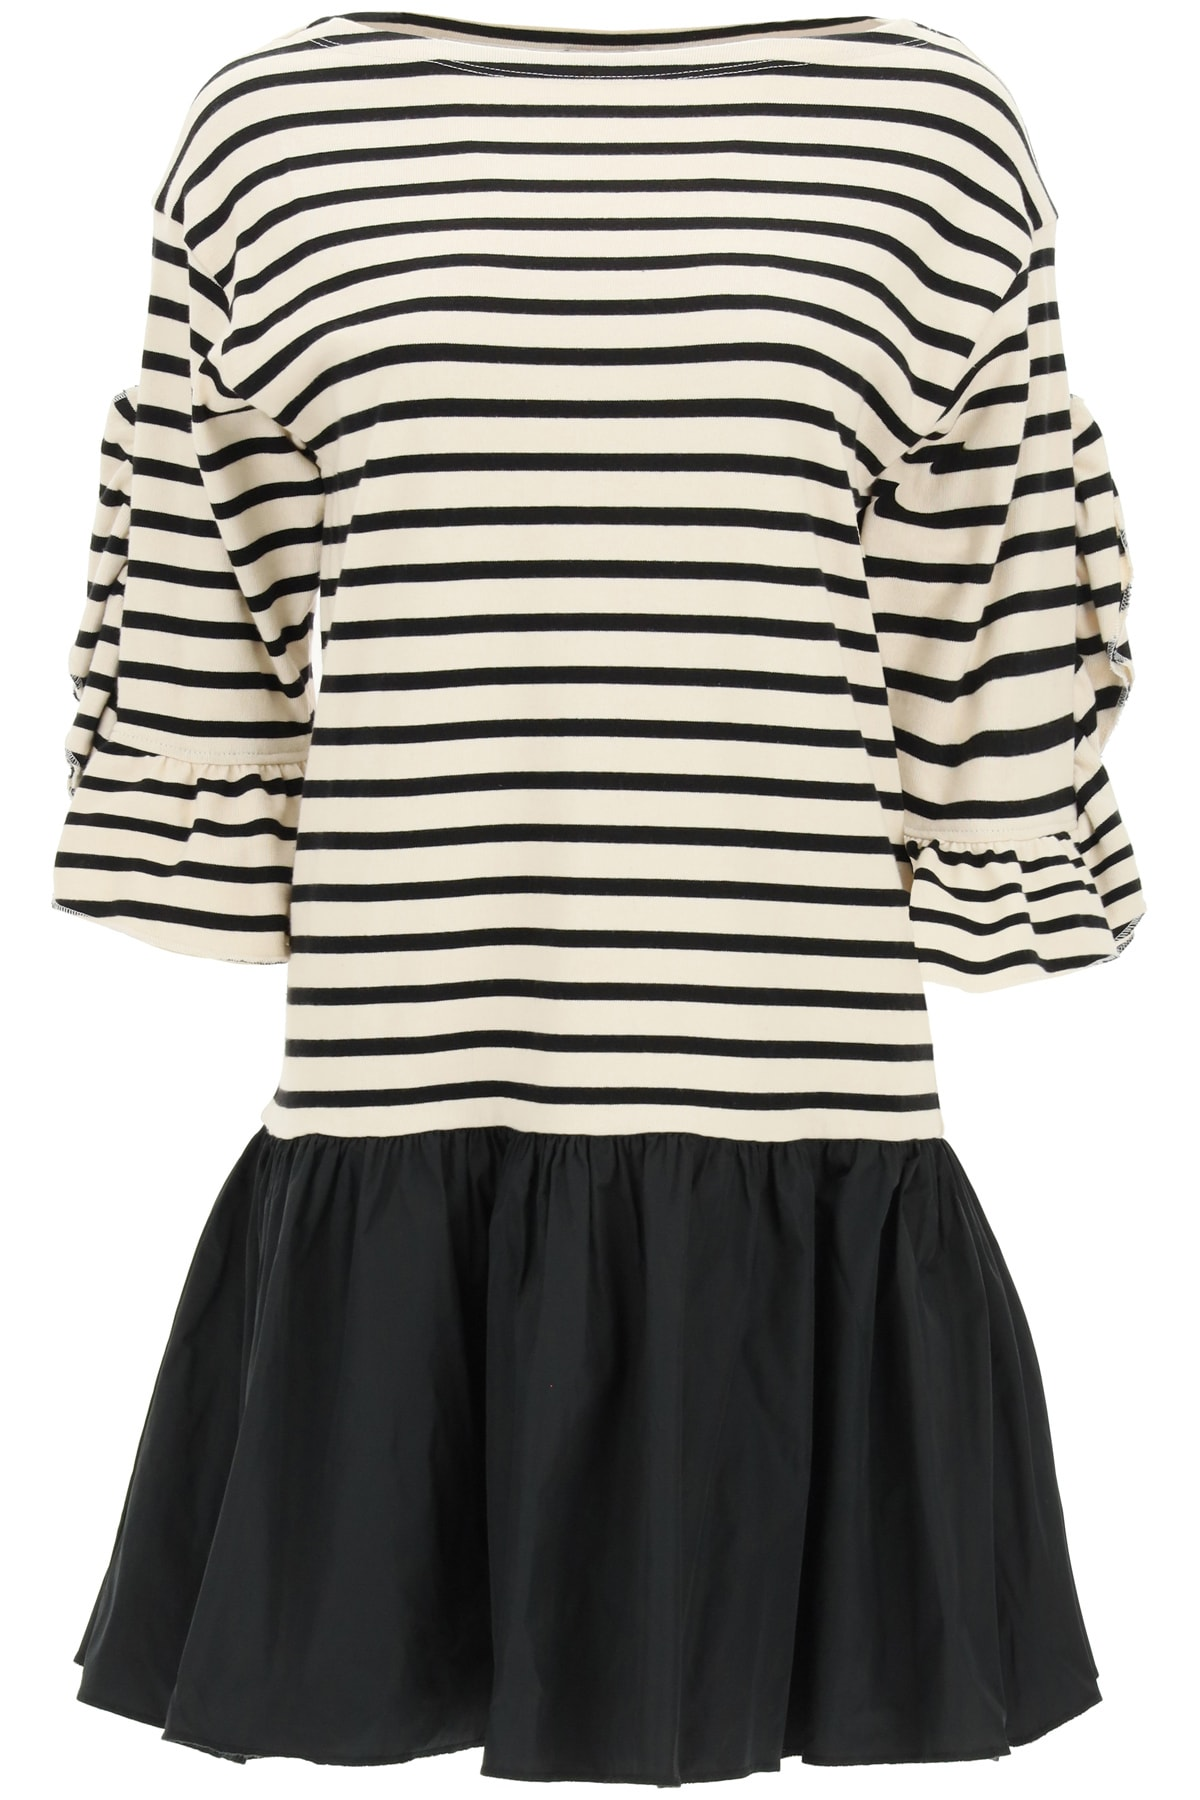 Buy RED Valentino Bi-material Mini Dress online, shop RED Valentino with free shipping